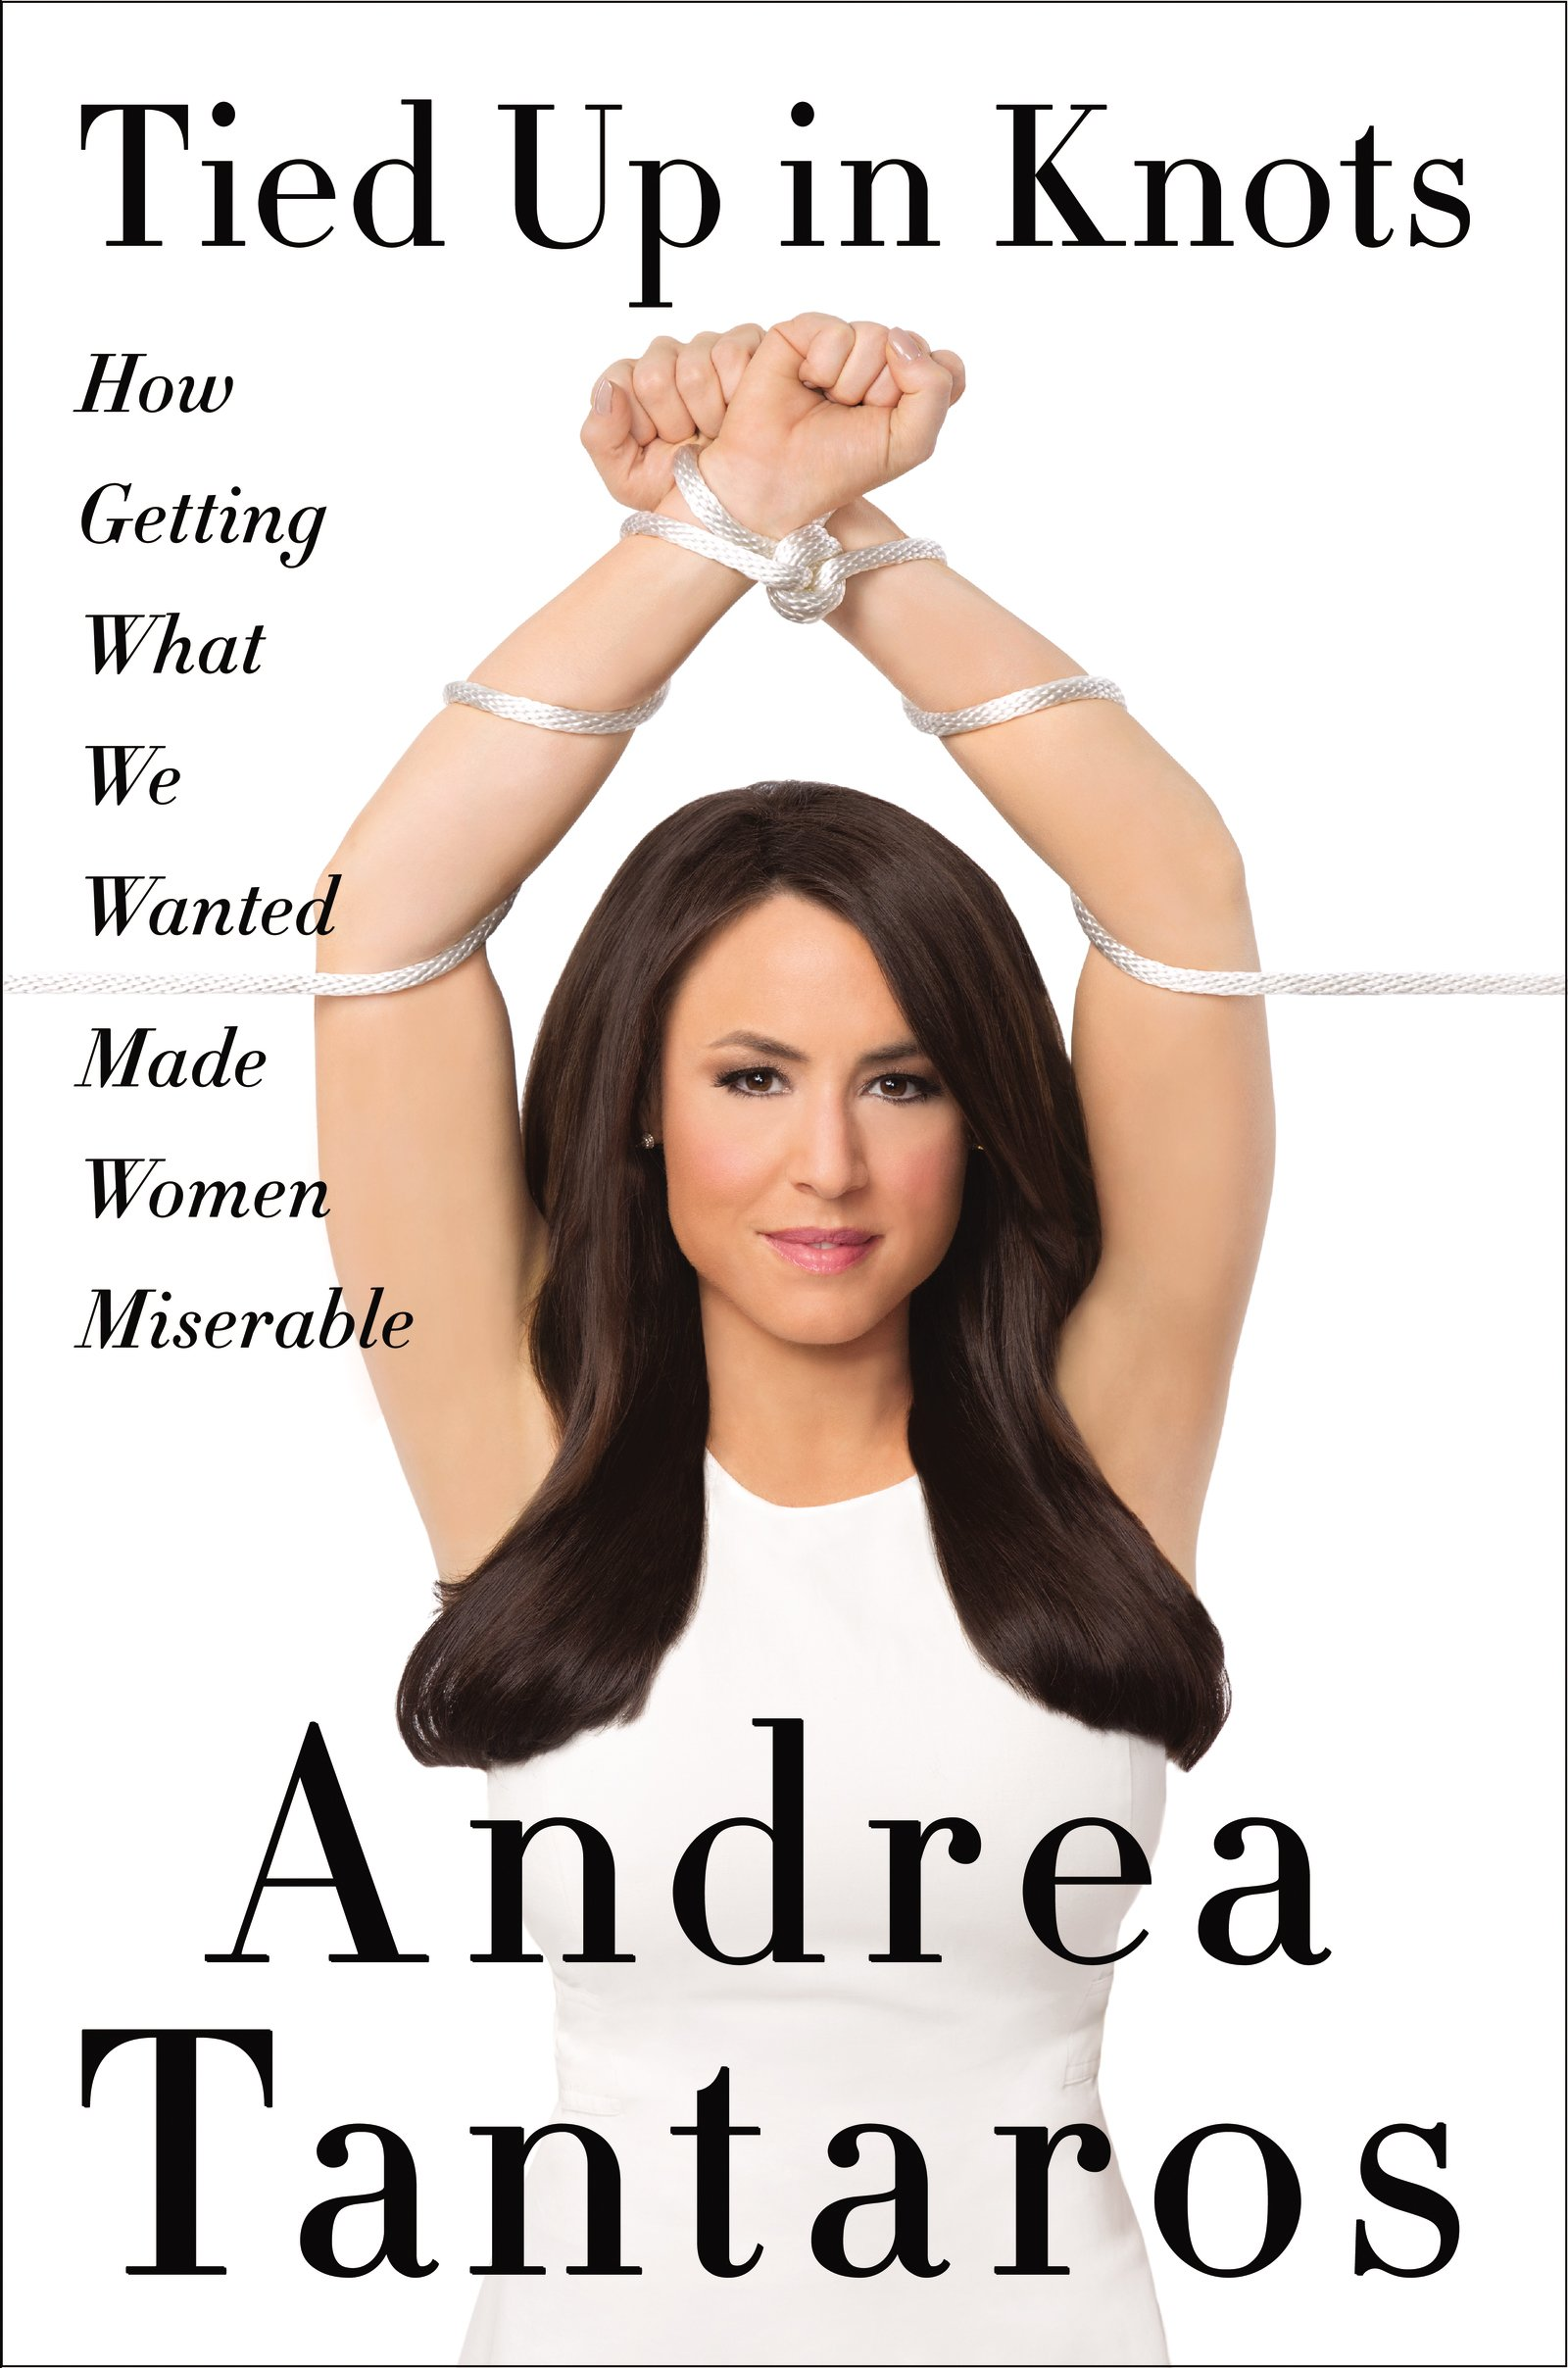 LISTEN: Andrea Tantaros - Tied Up In Knots